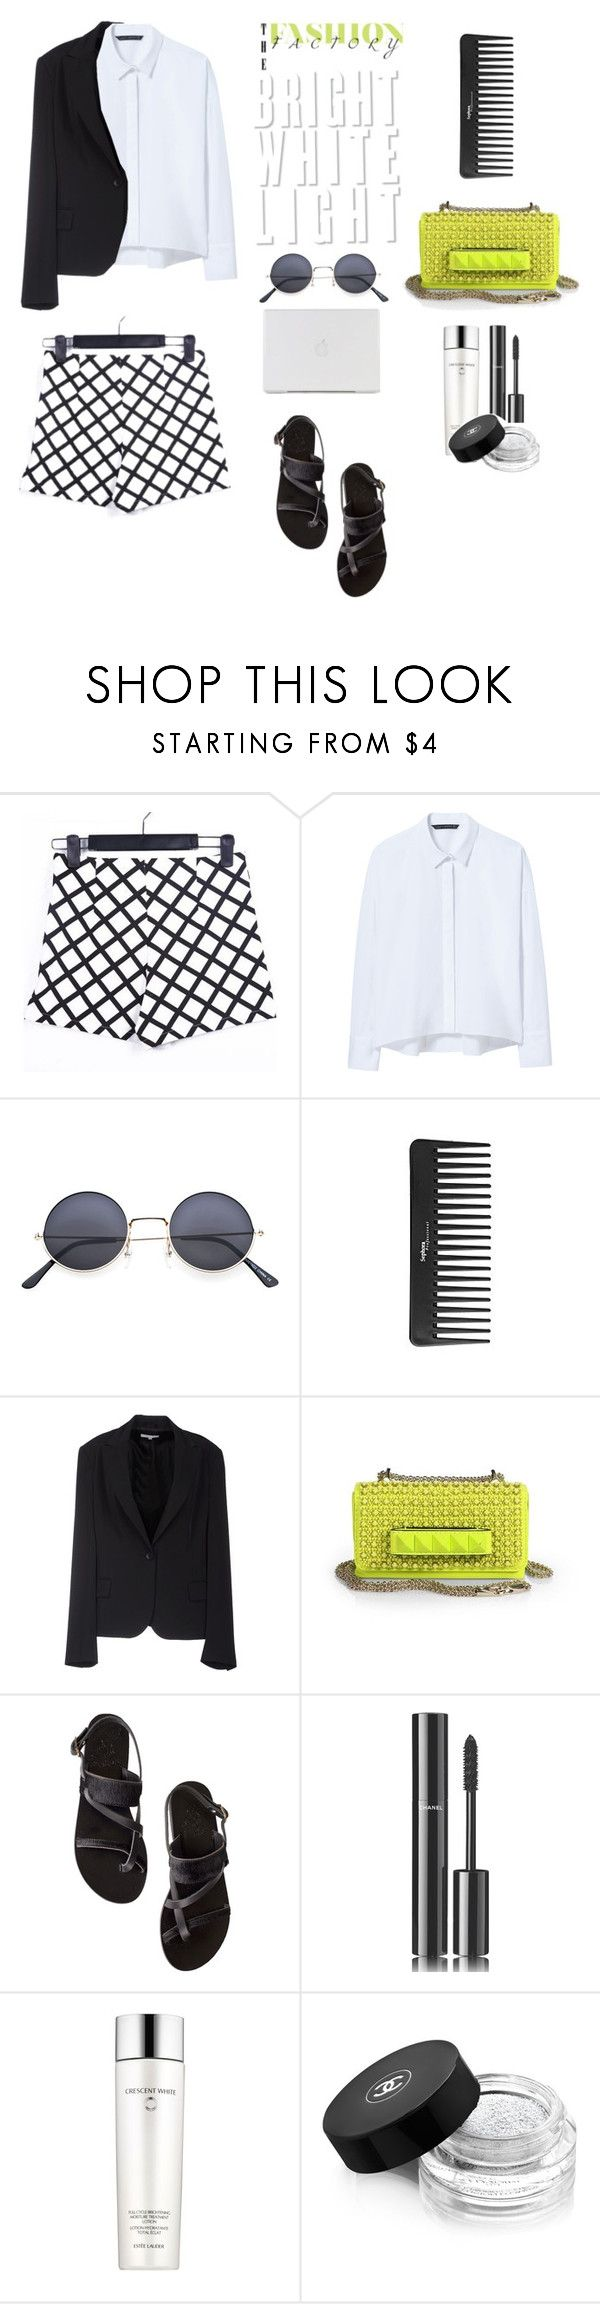 """Neon light ."" by gul07 ❤ liked on Polyvore featuring Zara, Sephora Collection, GERMANO ZAMA, Valentino, Ancient Greek Sandals, Chanel, Estée Lauder and plus size clothing"